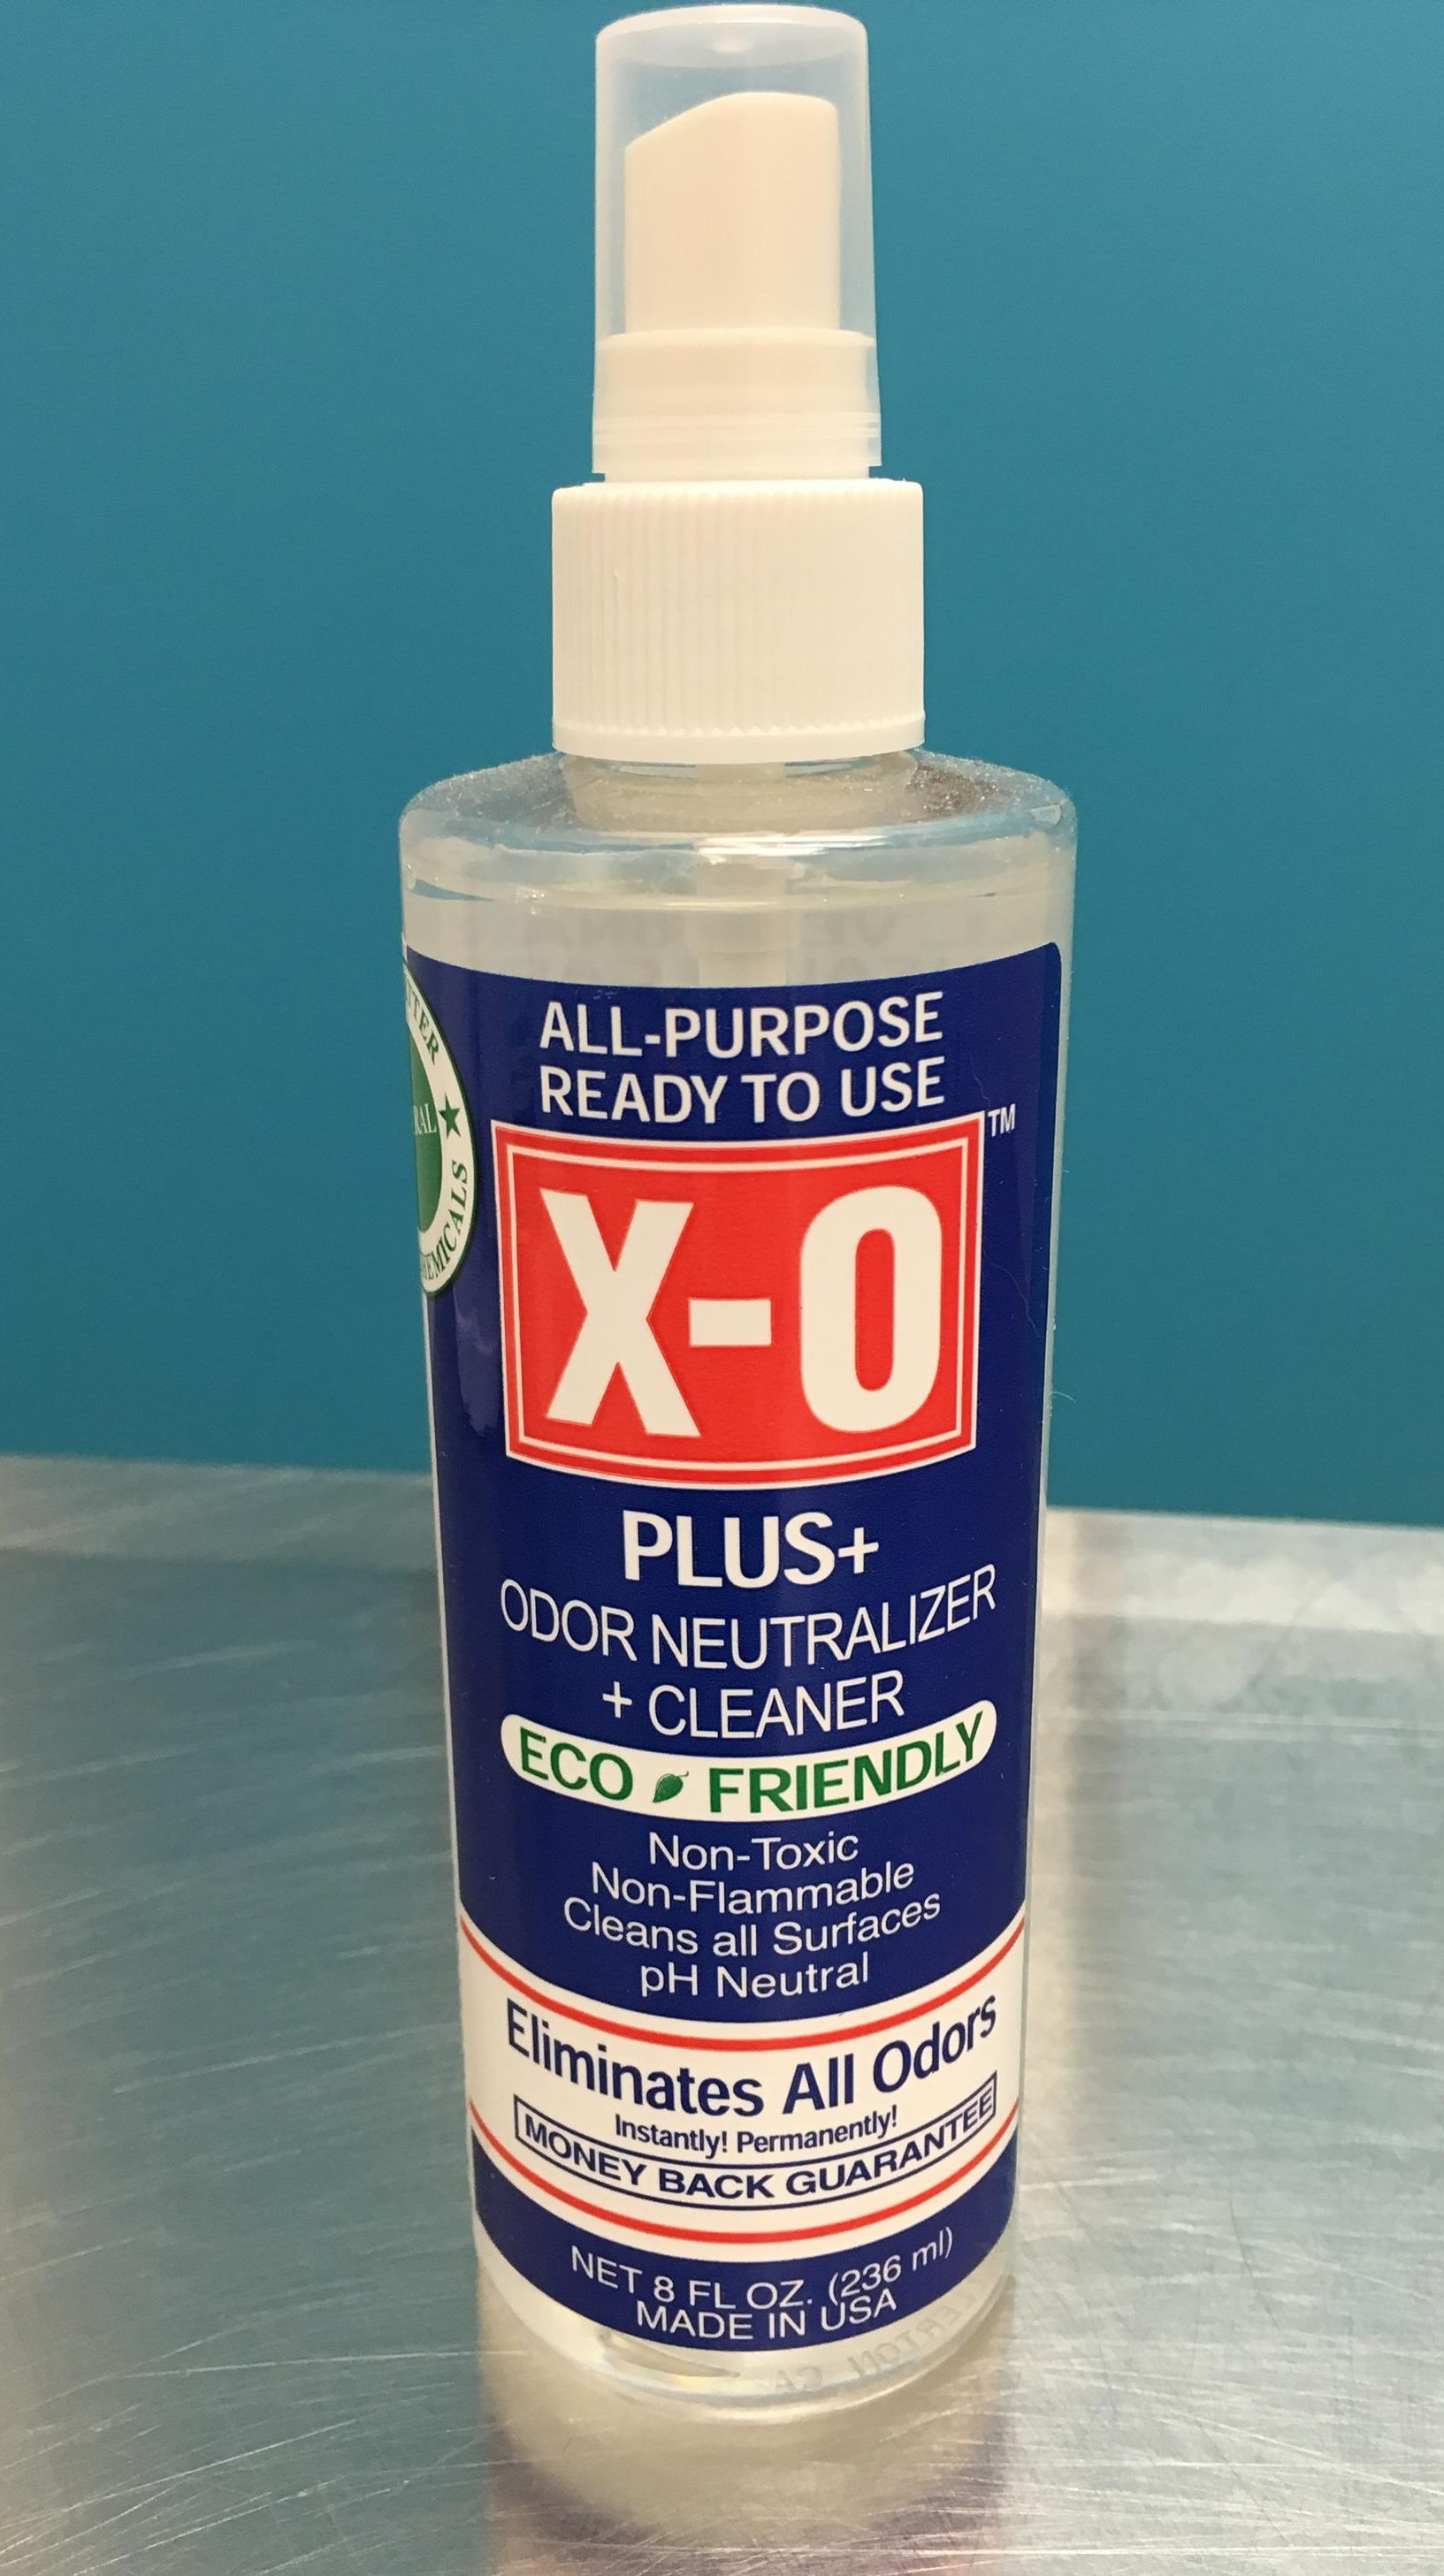 Eco-friendly stain and odor remover.